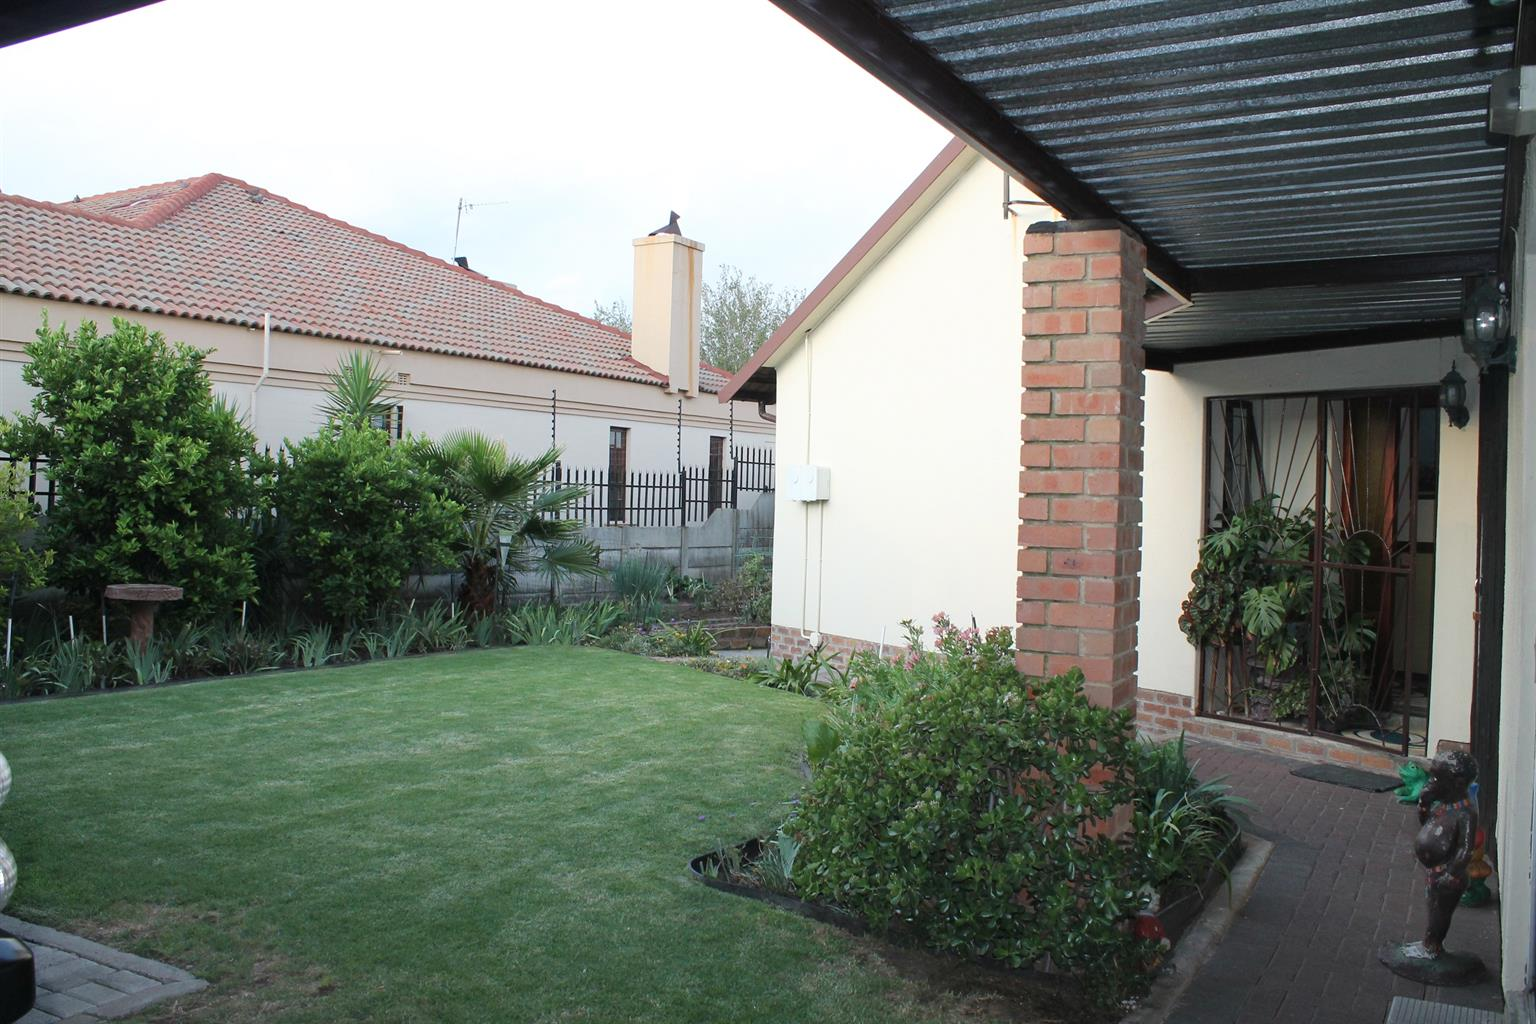 3 bedroom house for sale Secunda